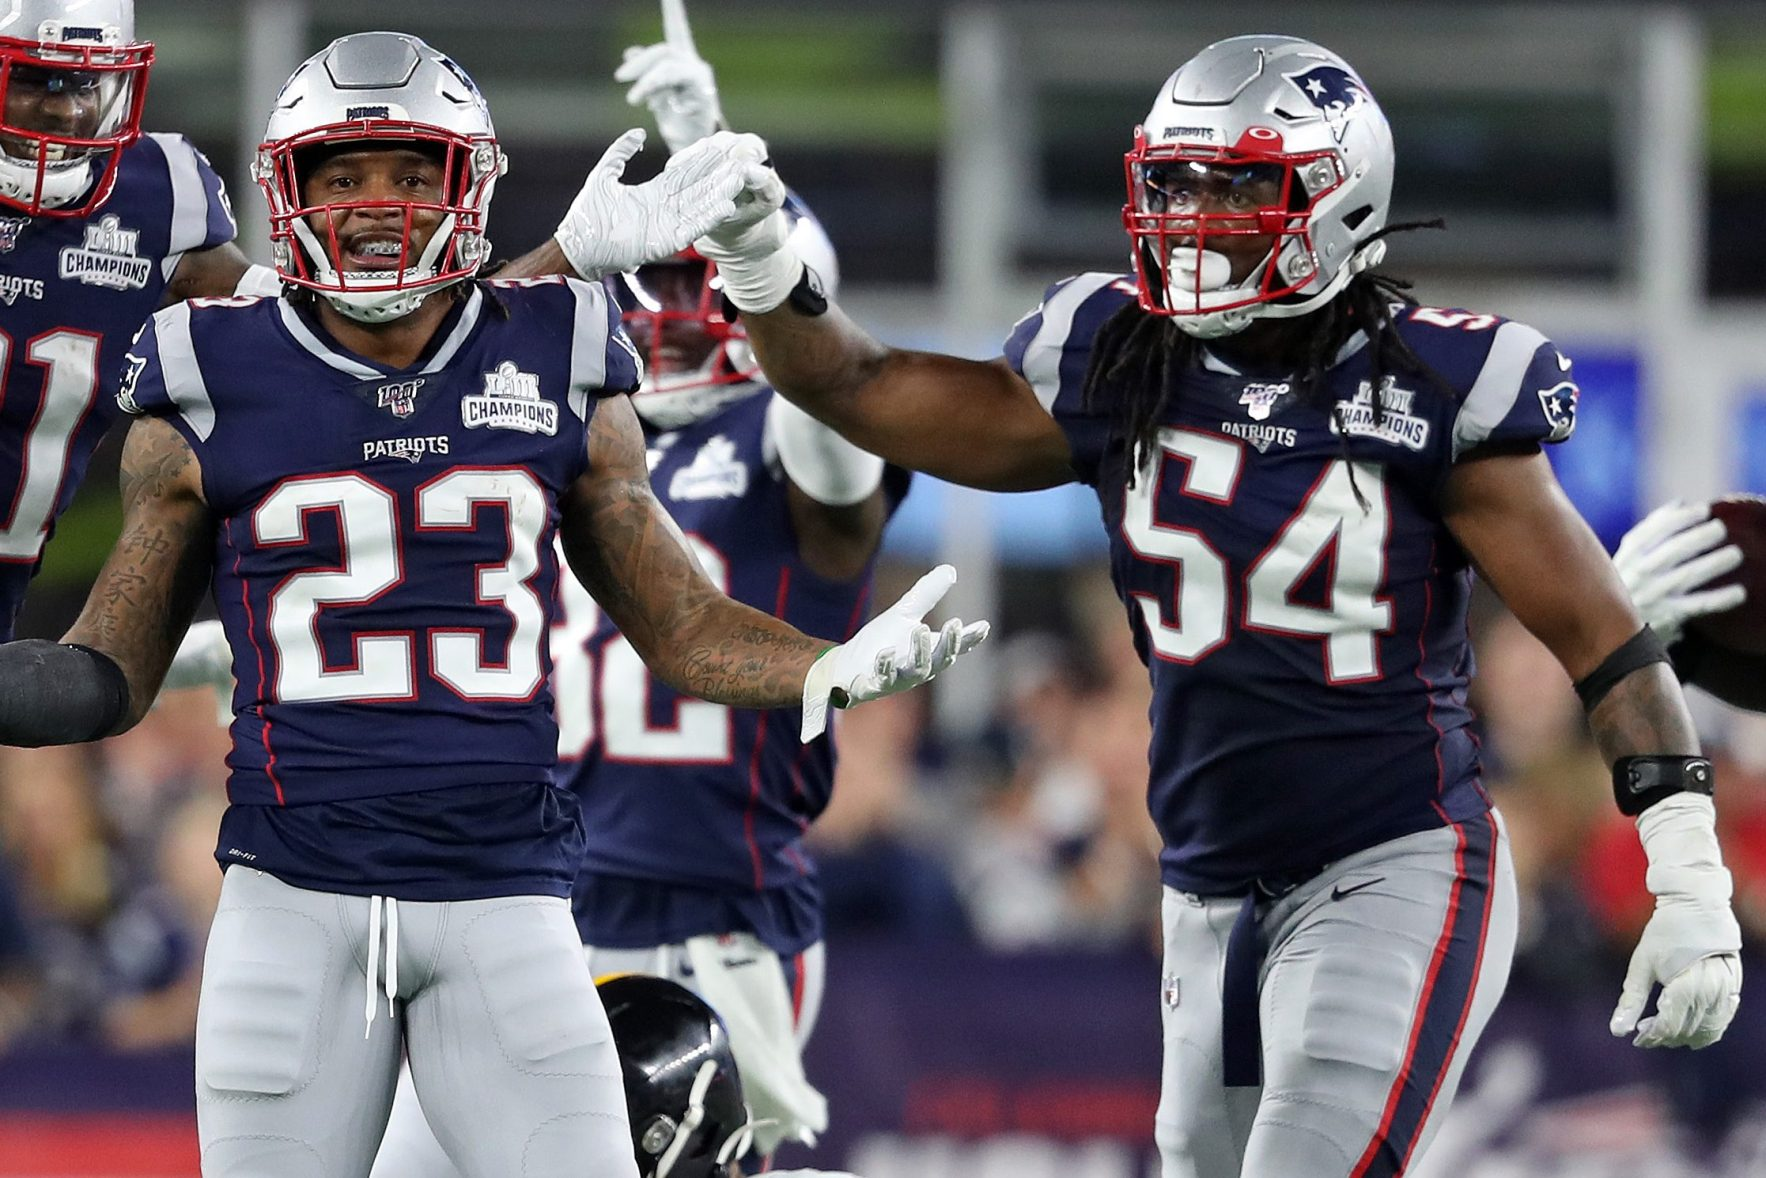 New England Patriots Have Already Lost 4 Starters to Opt-Outs